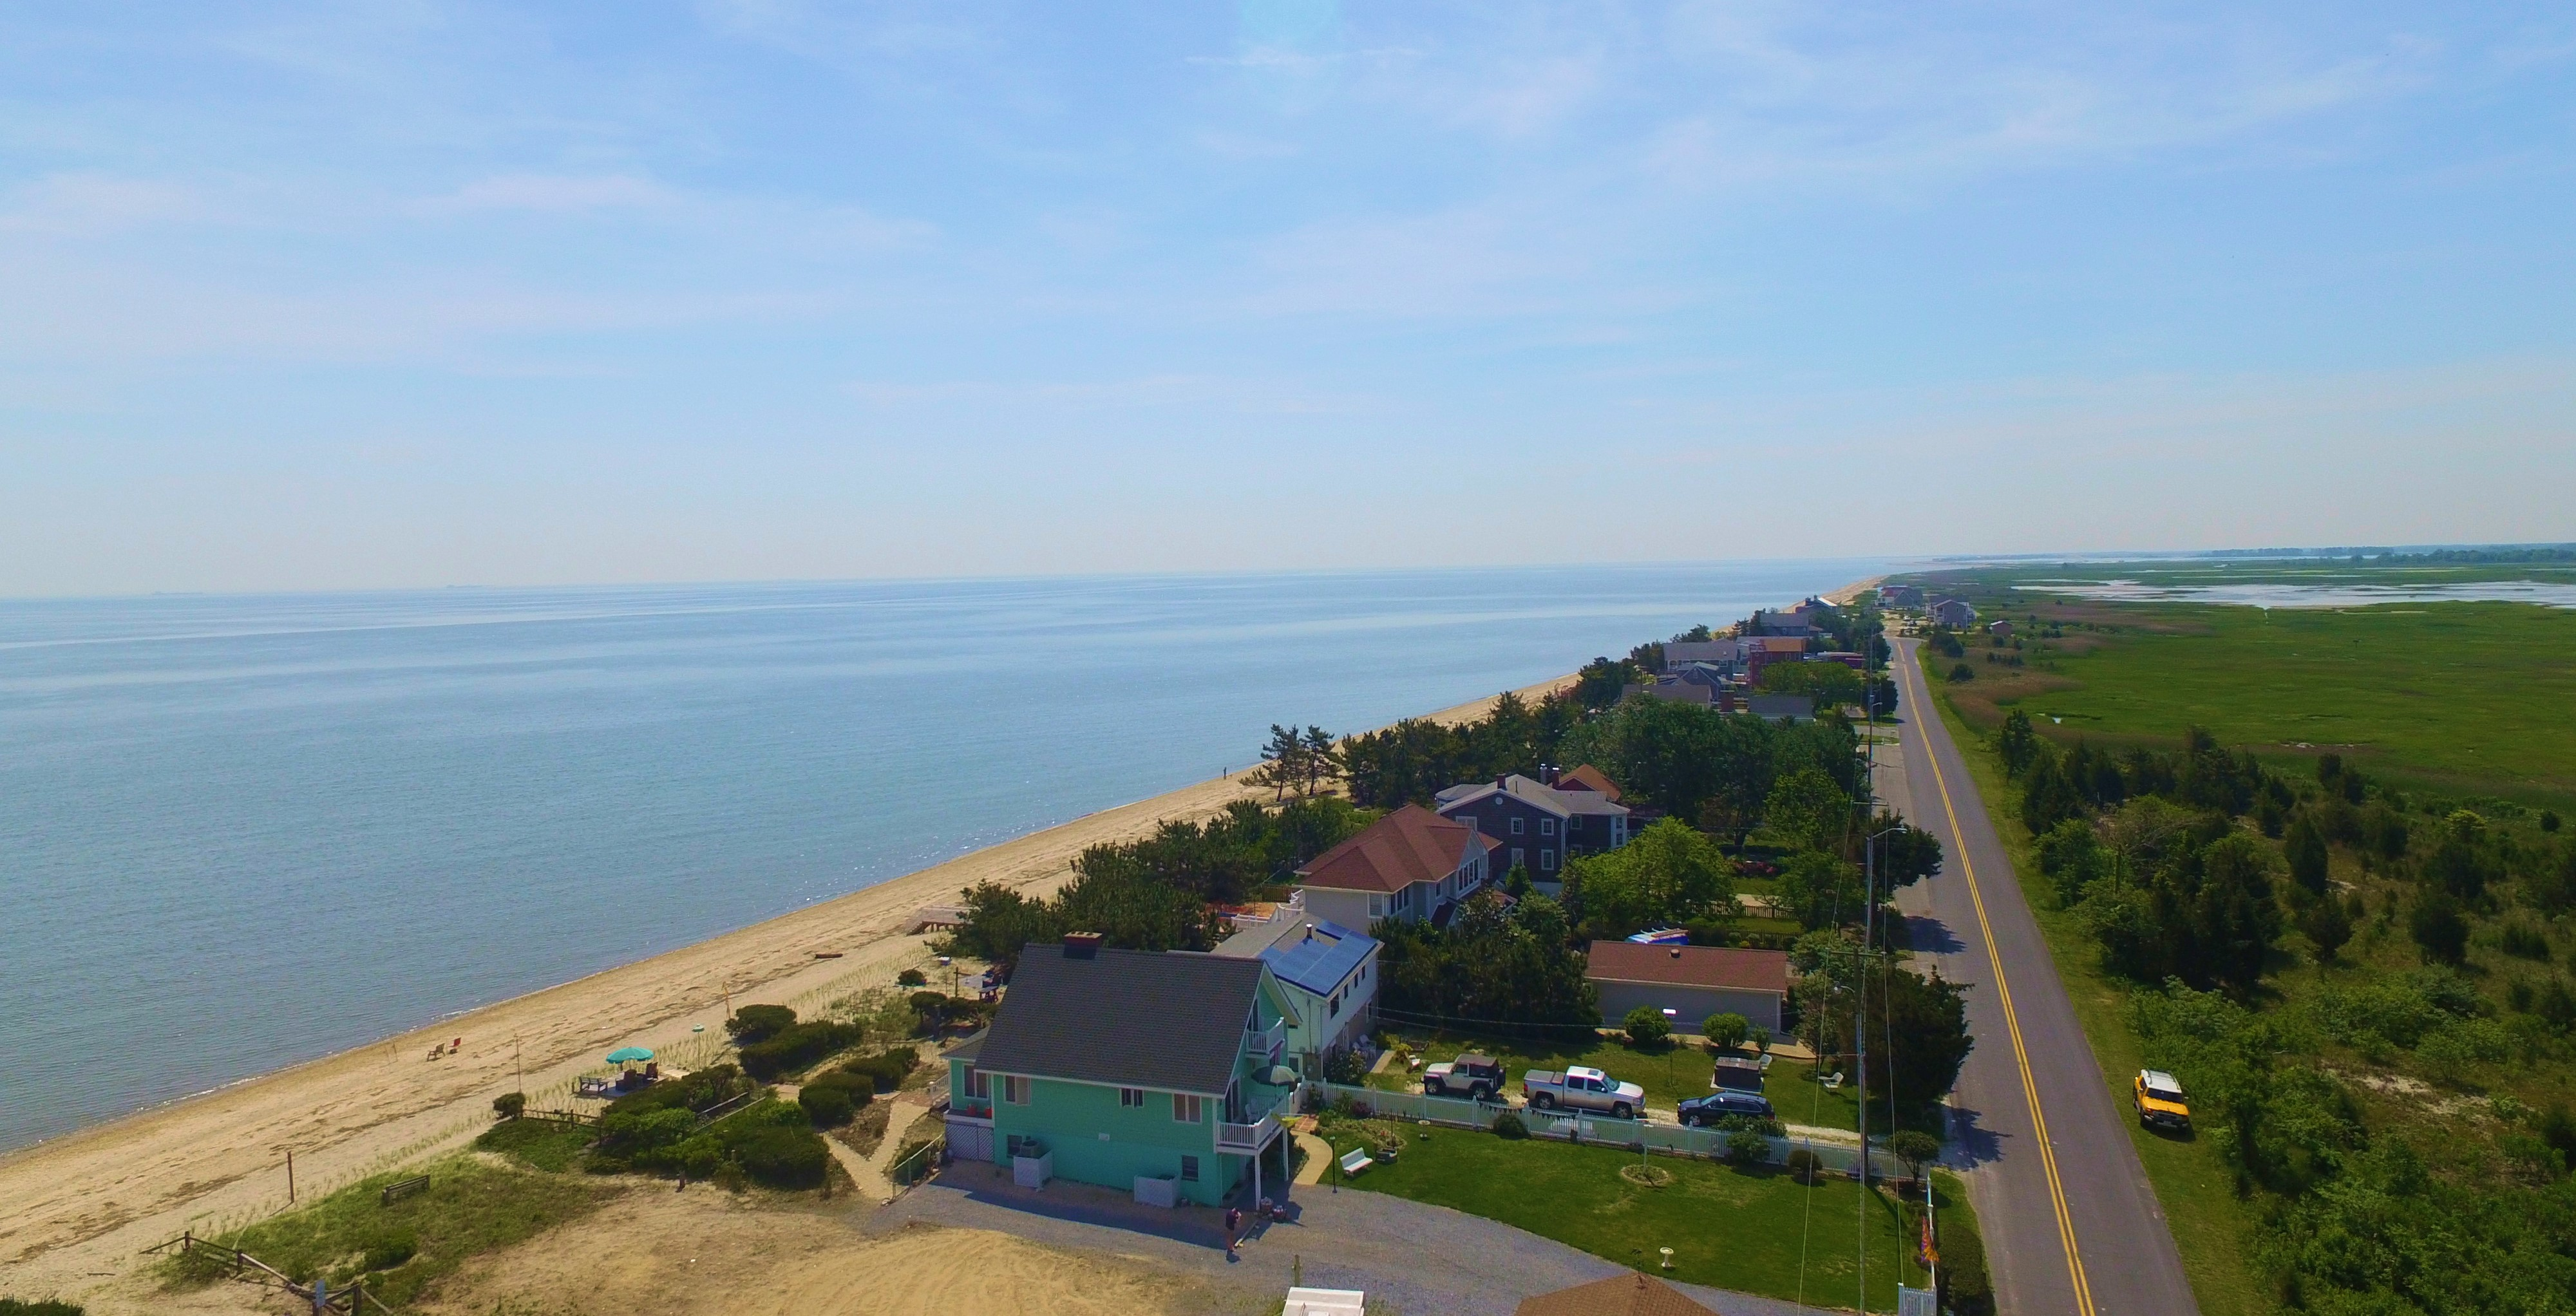 84 Glade Circle East, Rehoboth Beach : $699,000